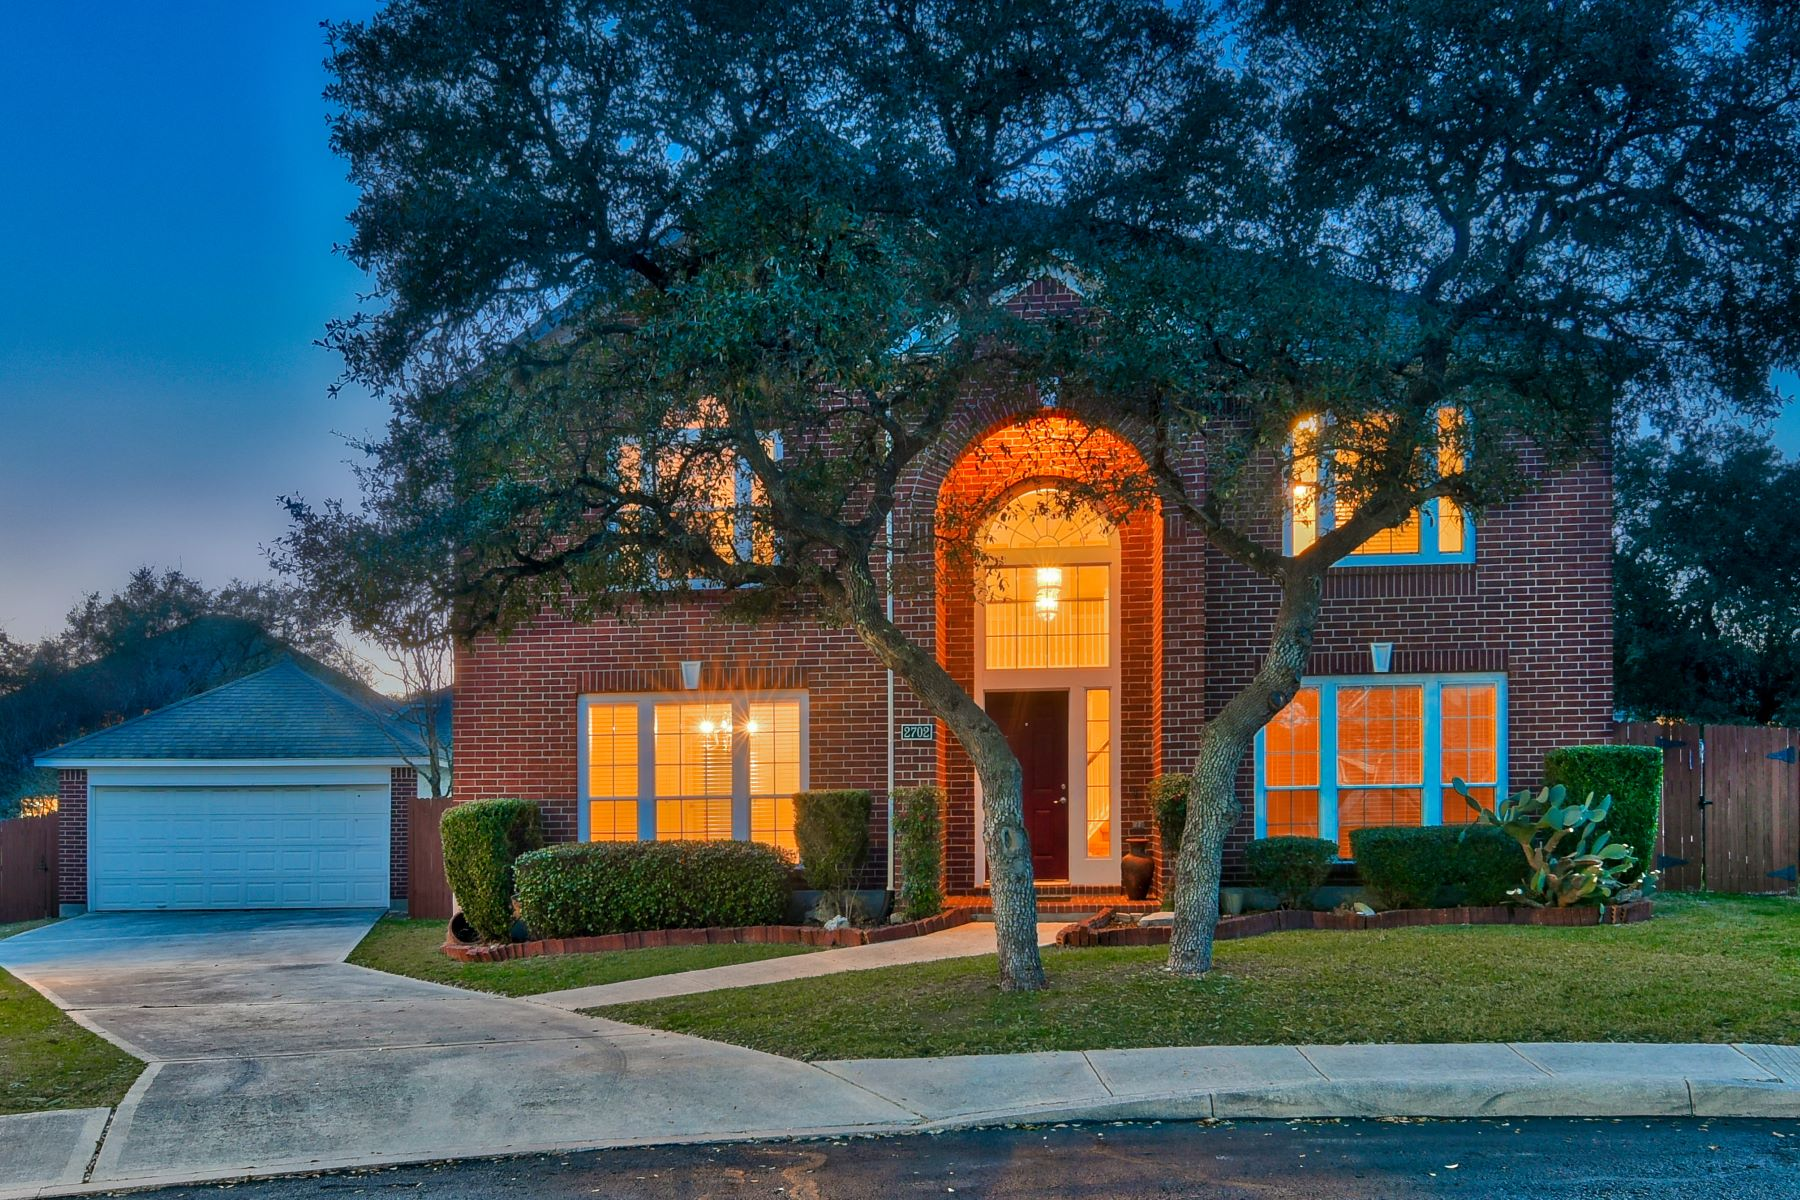 Single Family Home for Sale at Pristine Home in Trinity Oaks 2702 Glenbrook Way, San Antonio, Texas, 78261 United States